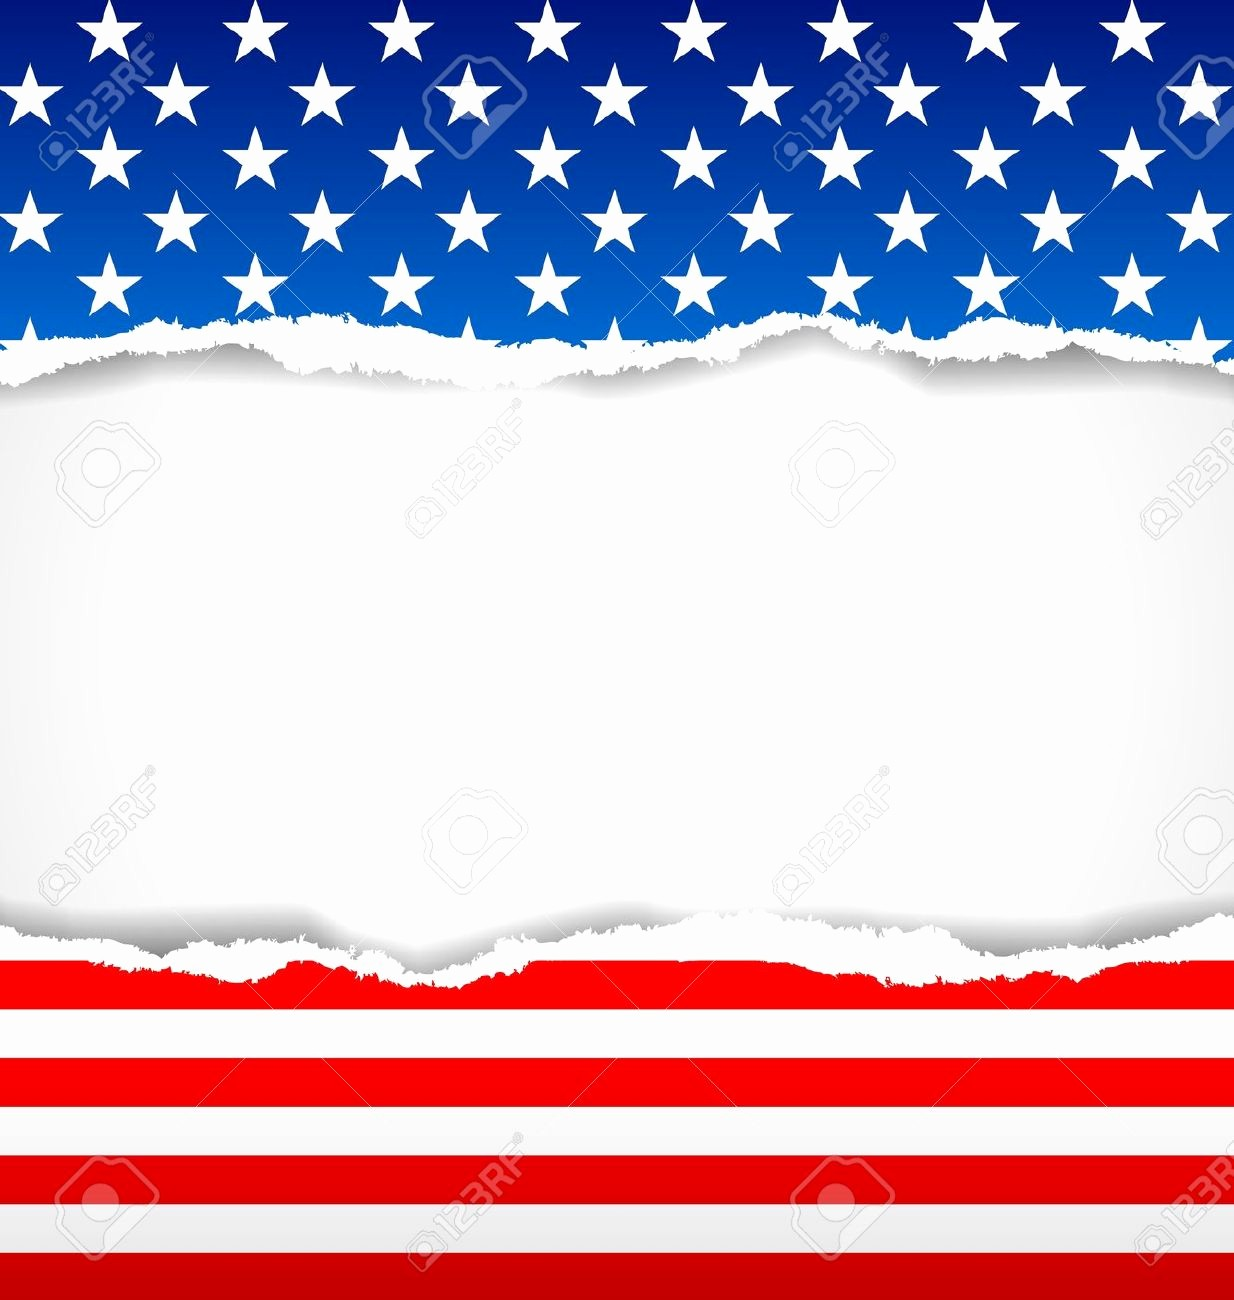 Patriotic Borders for Word Documents Awesome Free Patriotic Backgrounds 52dazhew Gallery